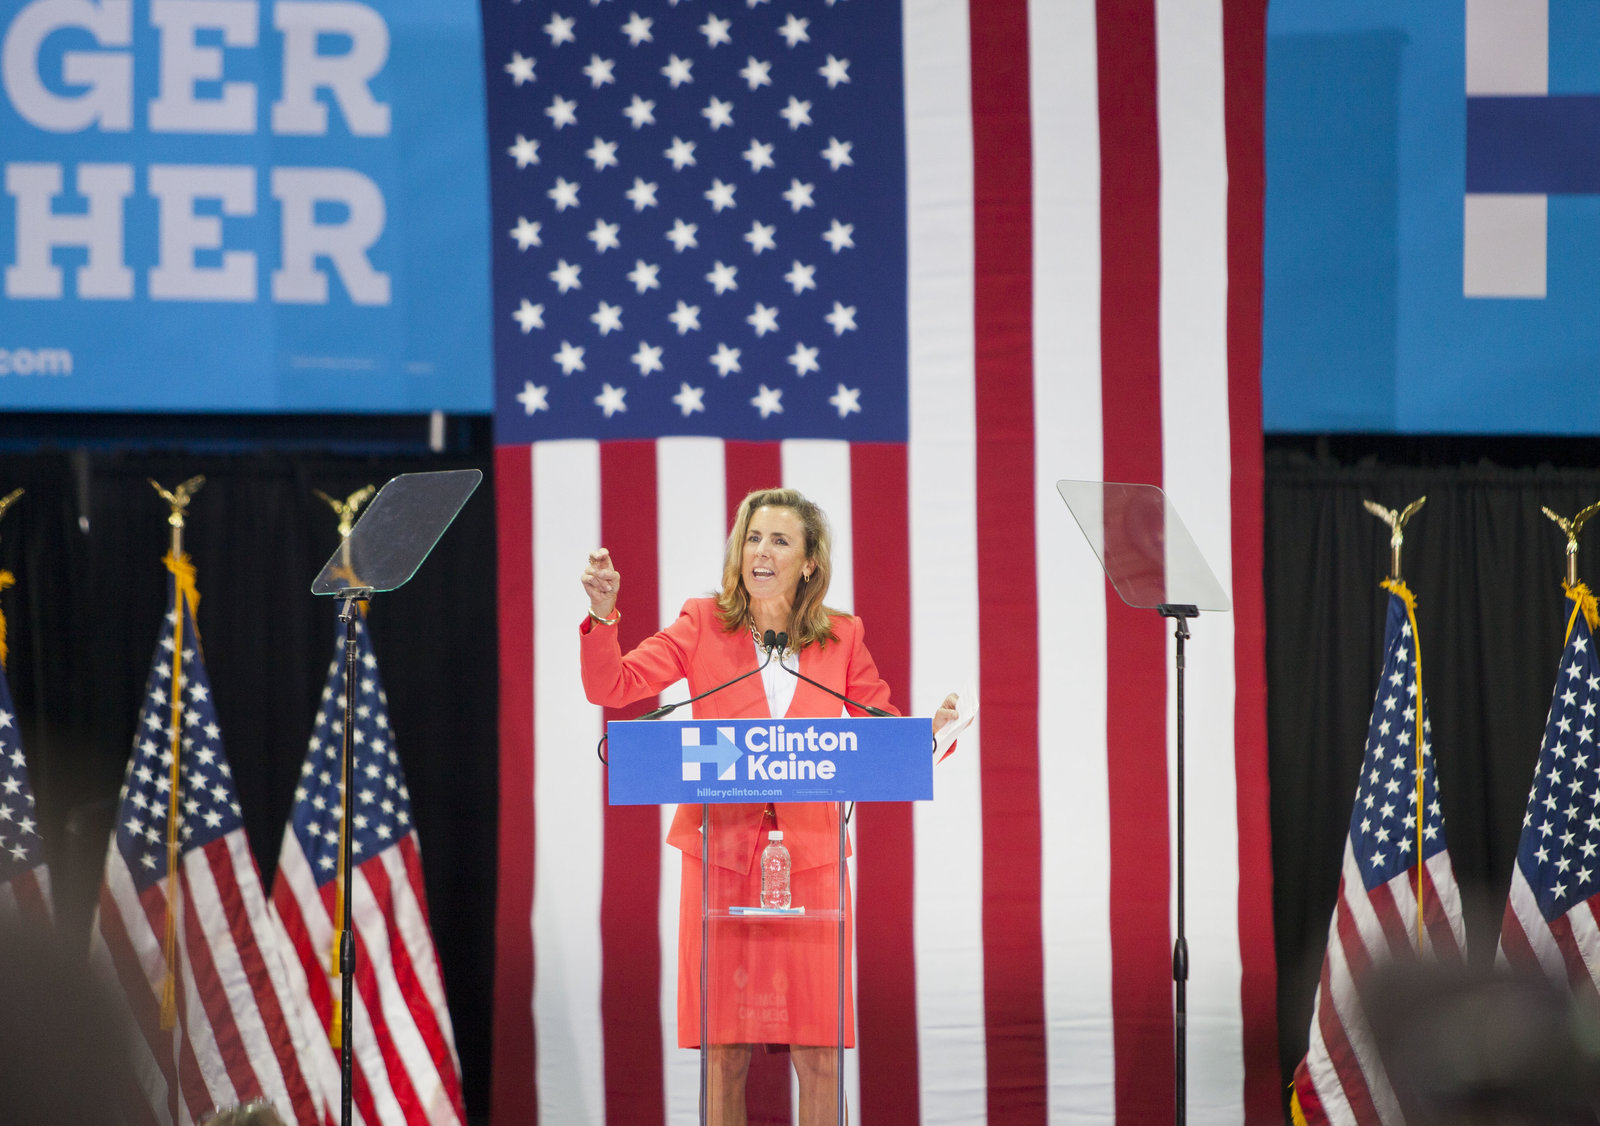 Democrat Katie McGinty campaigns for Hillary Clinton, hopes to ride her momentum to a Senate seat